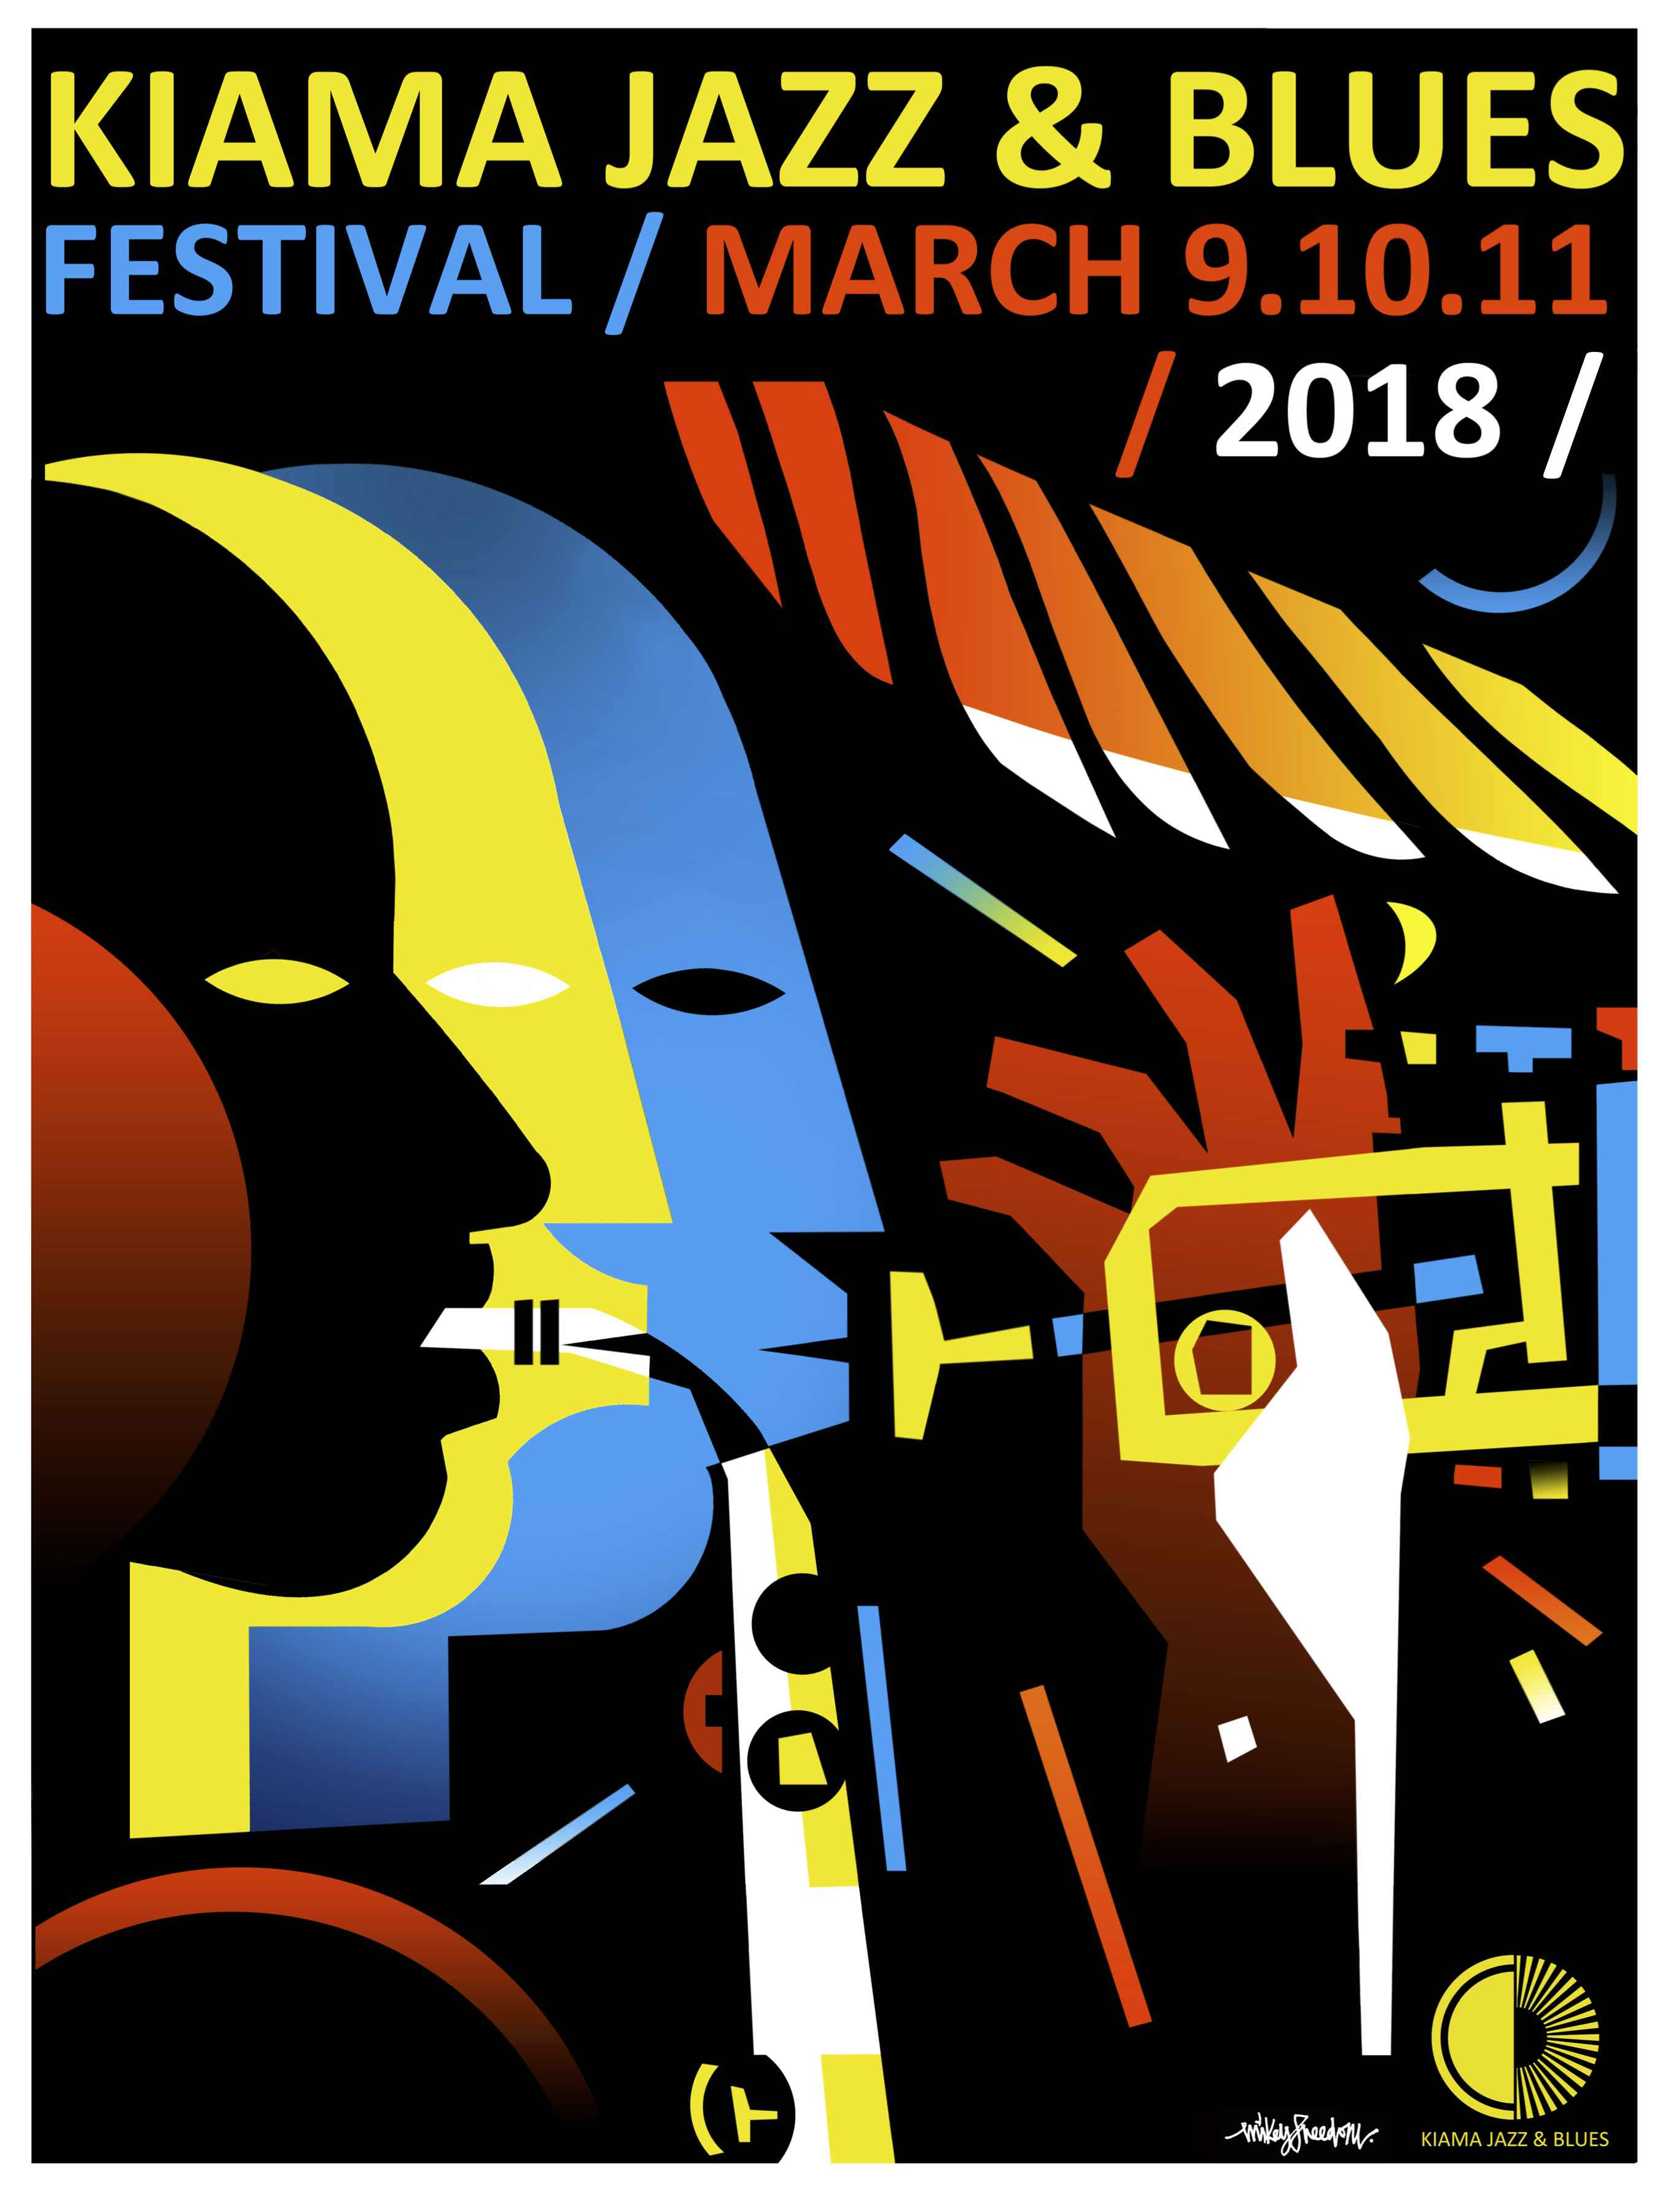 Kiama Jazz and Blues Festival March 9-11